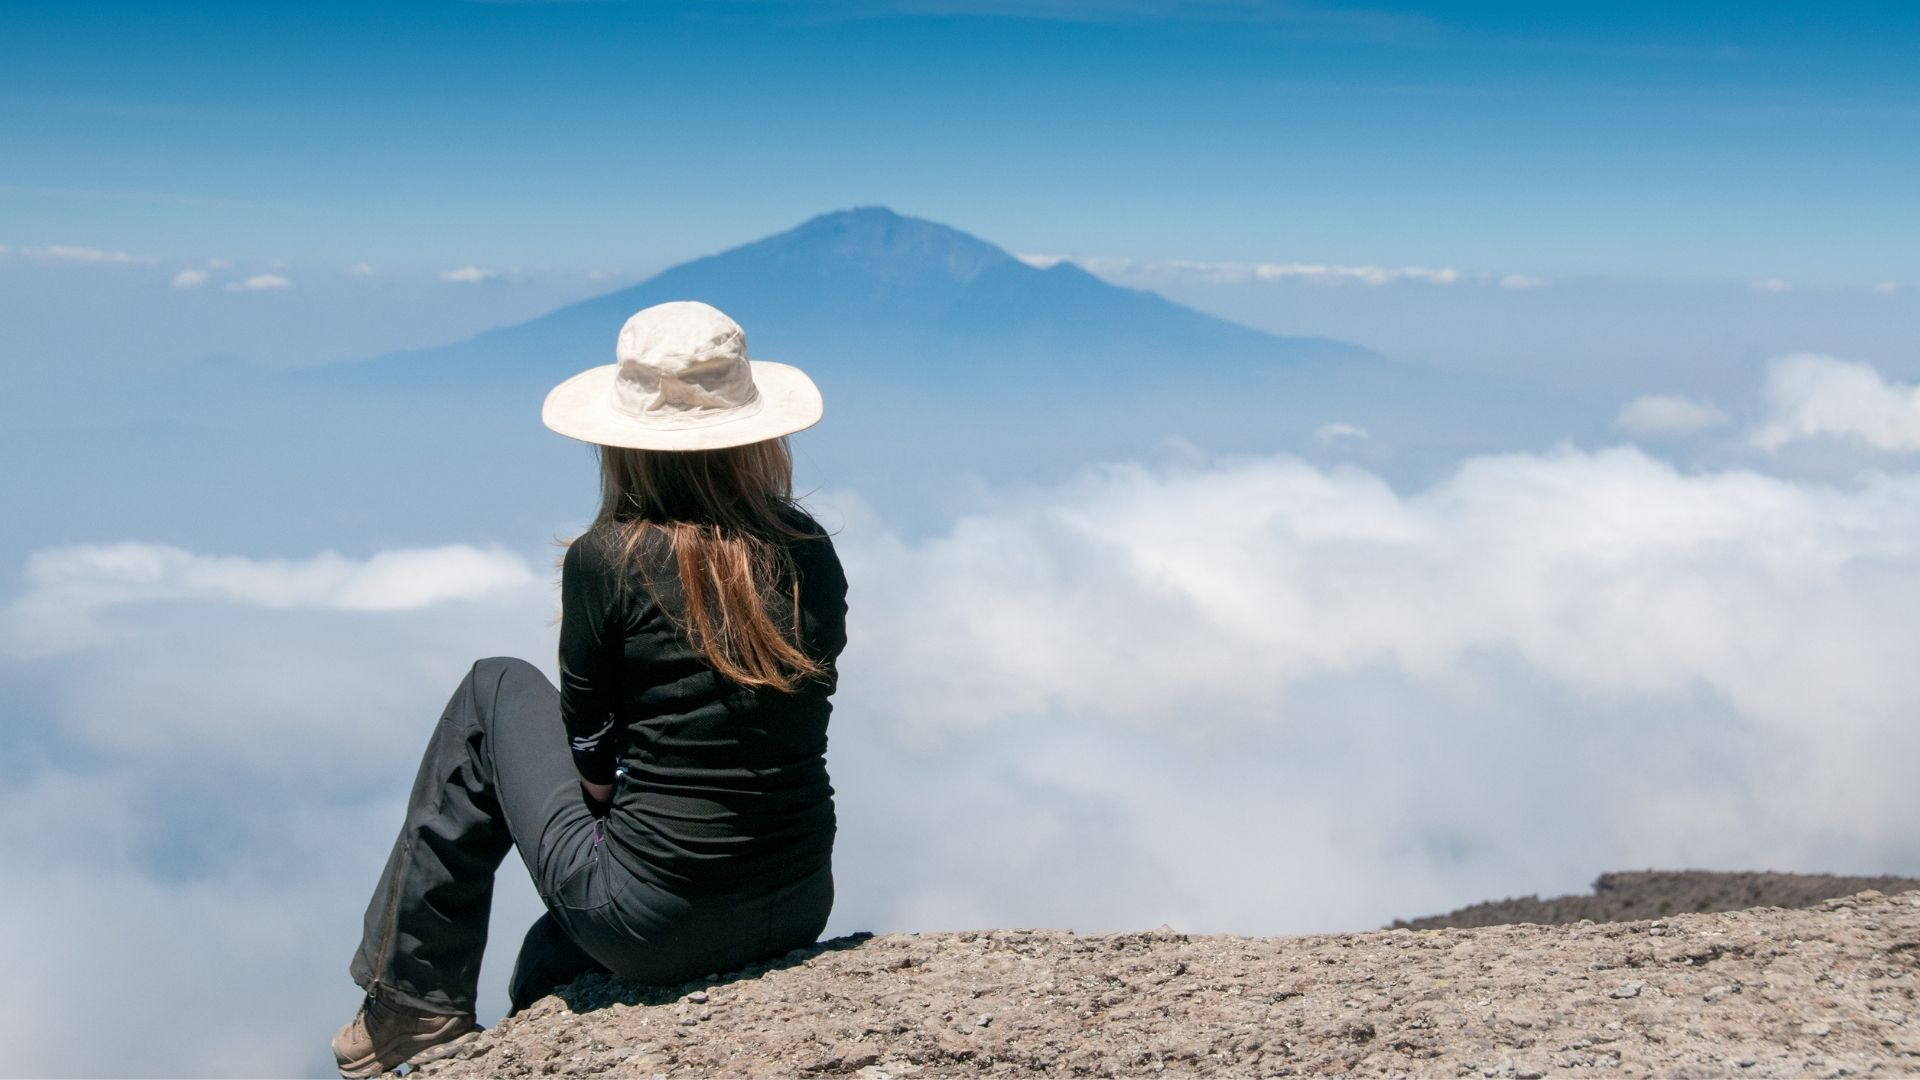 woman thinking2 - So you want to quit your job to travel?